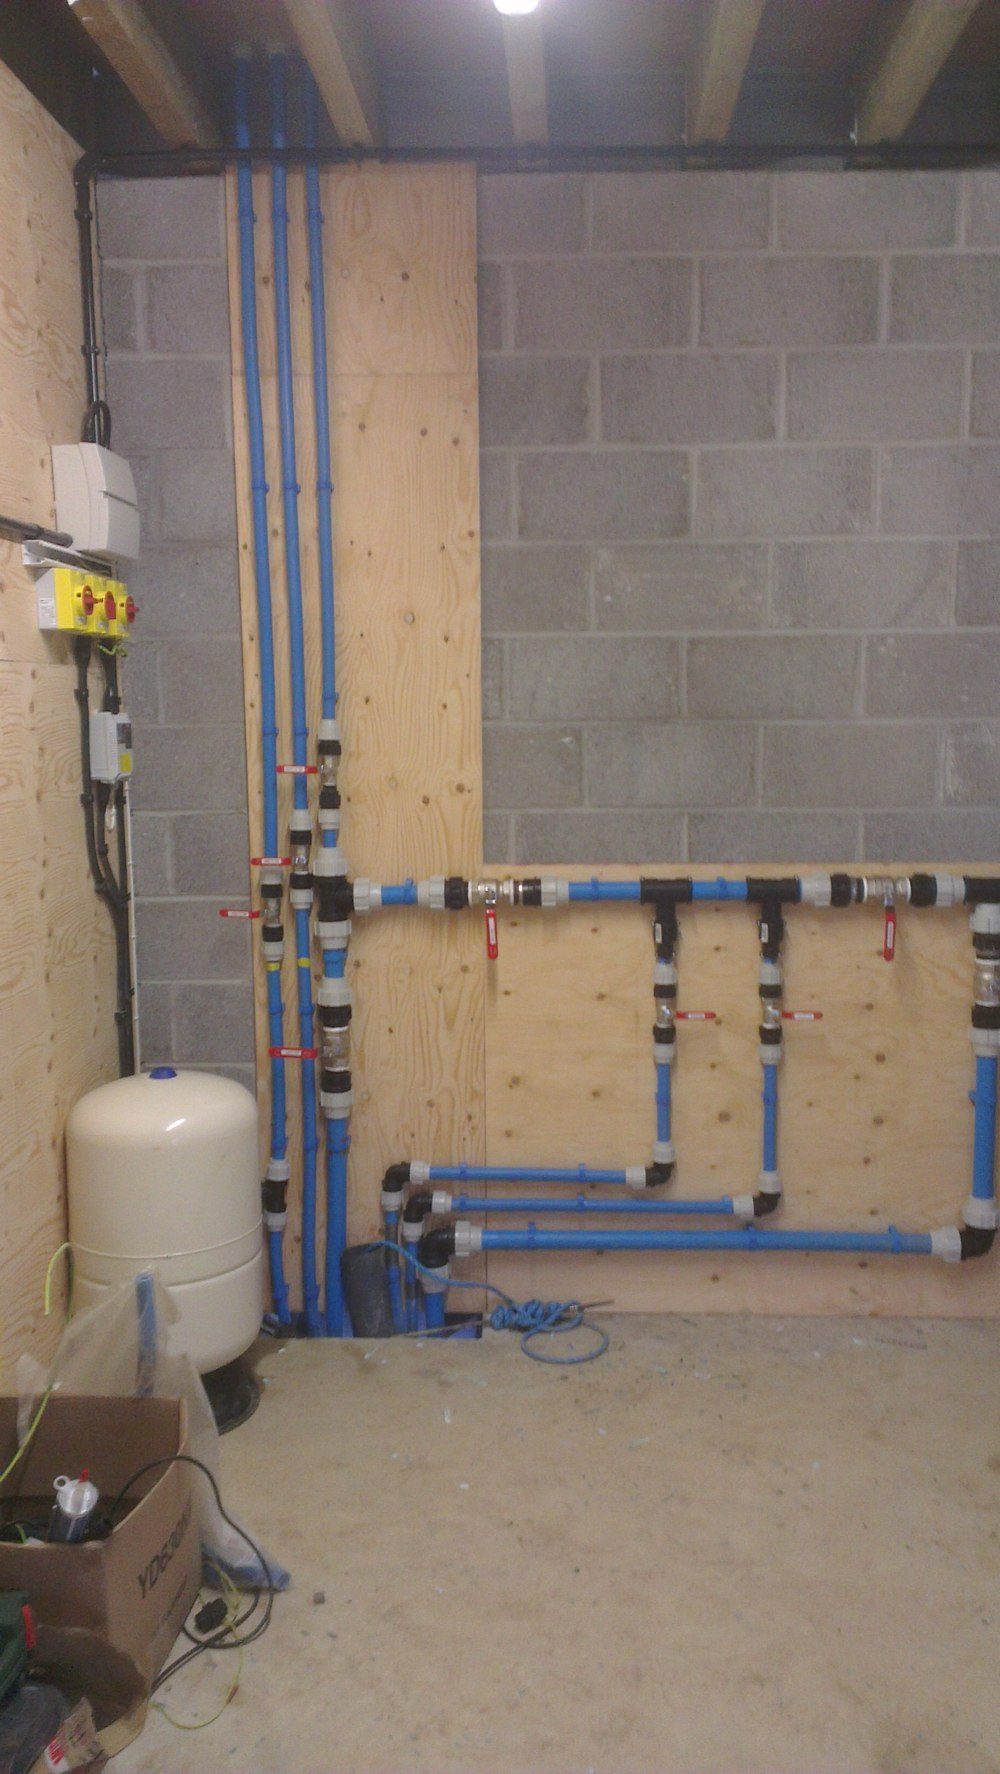 Pipework and water filtration